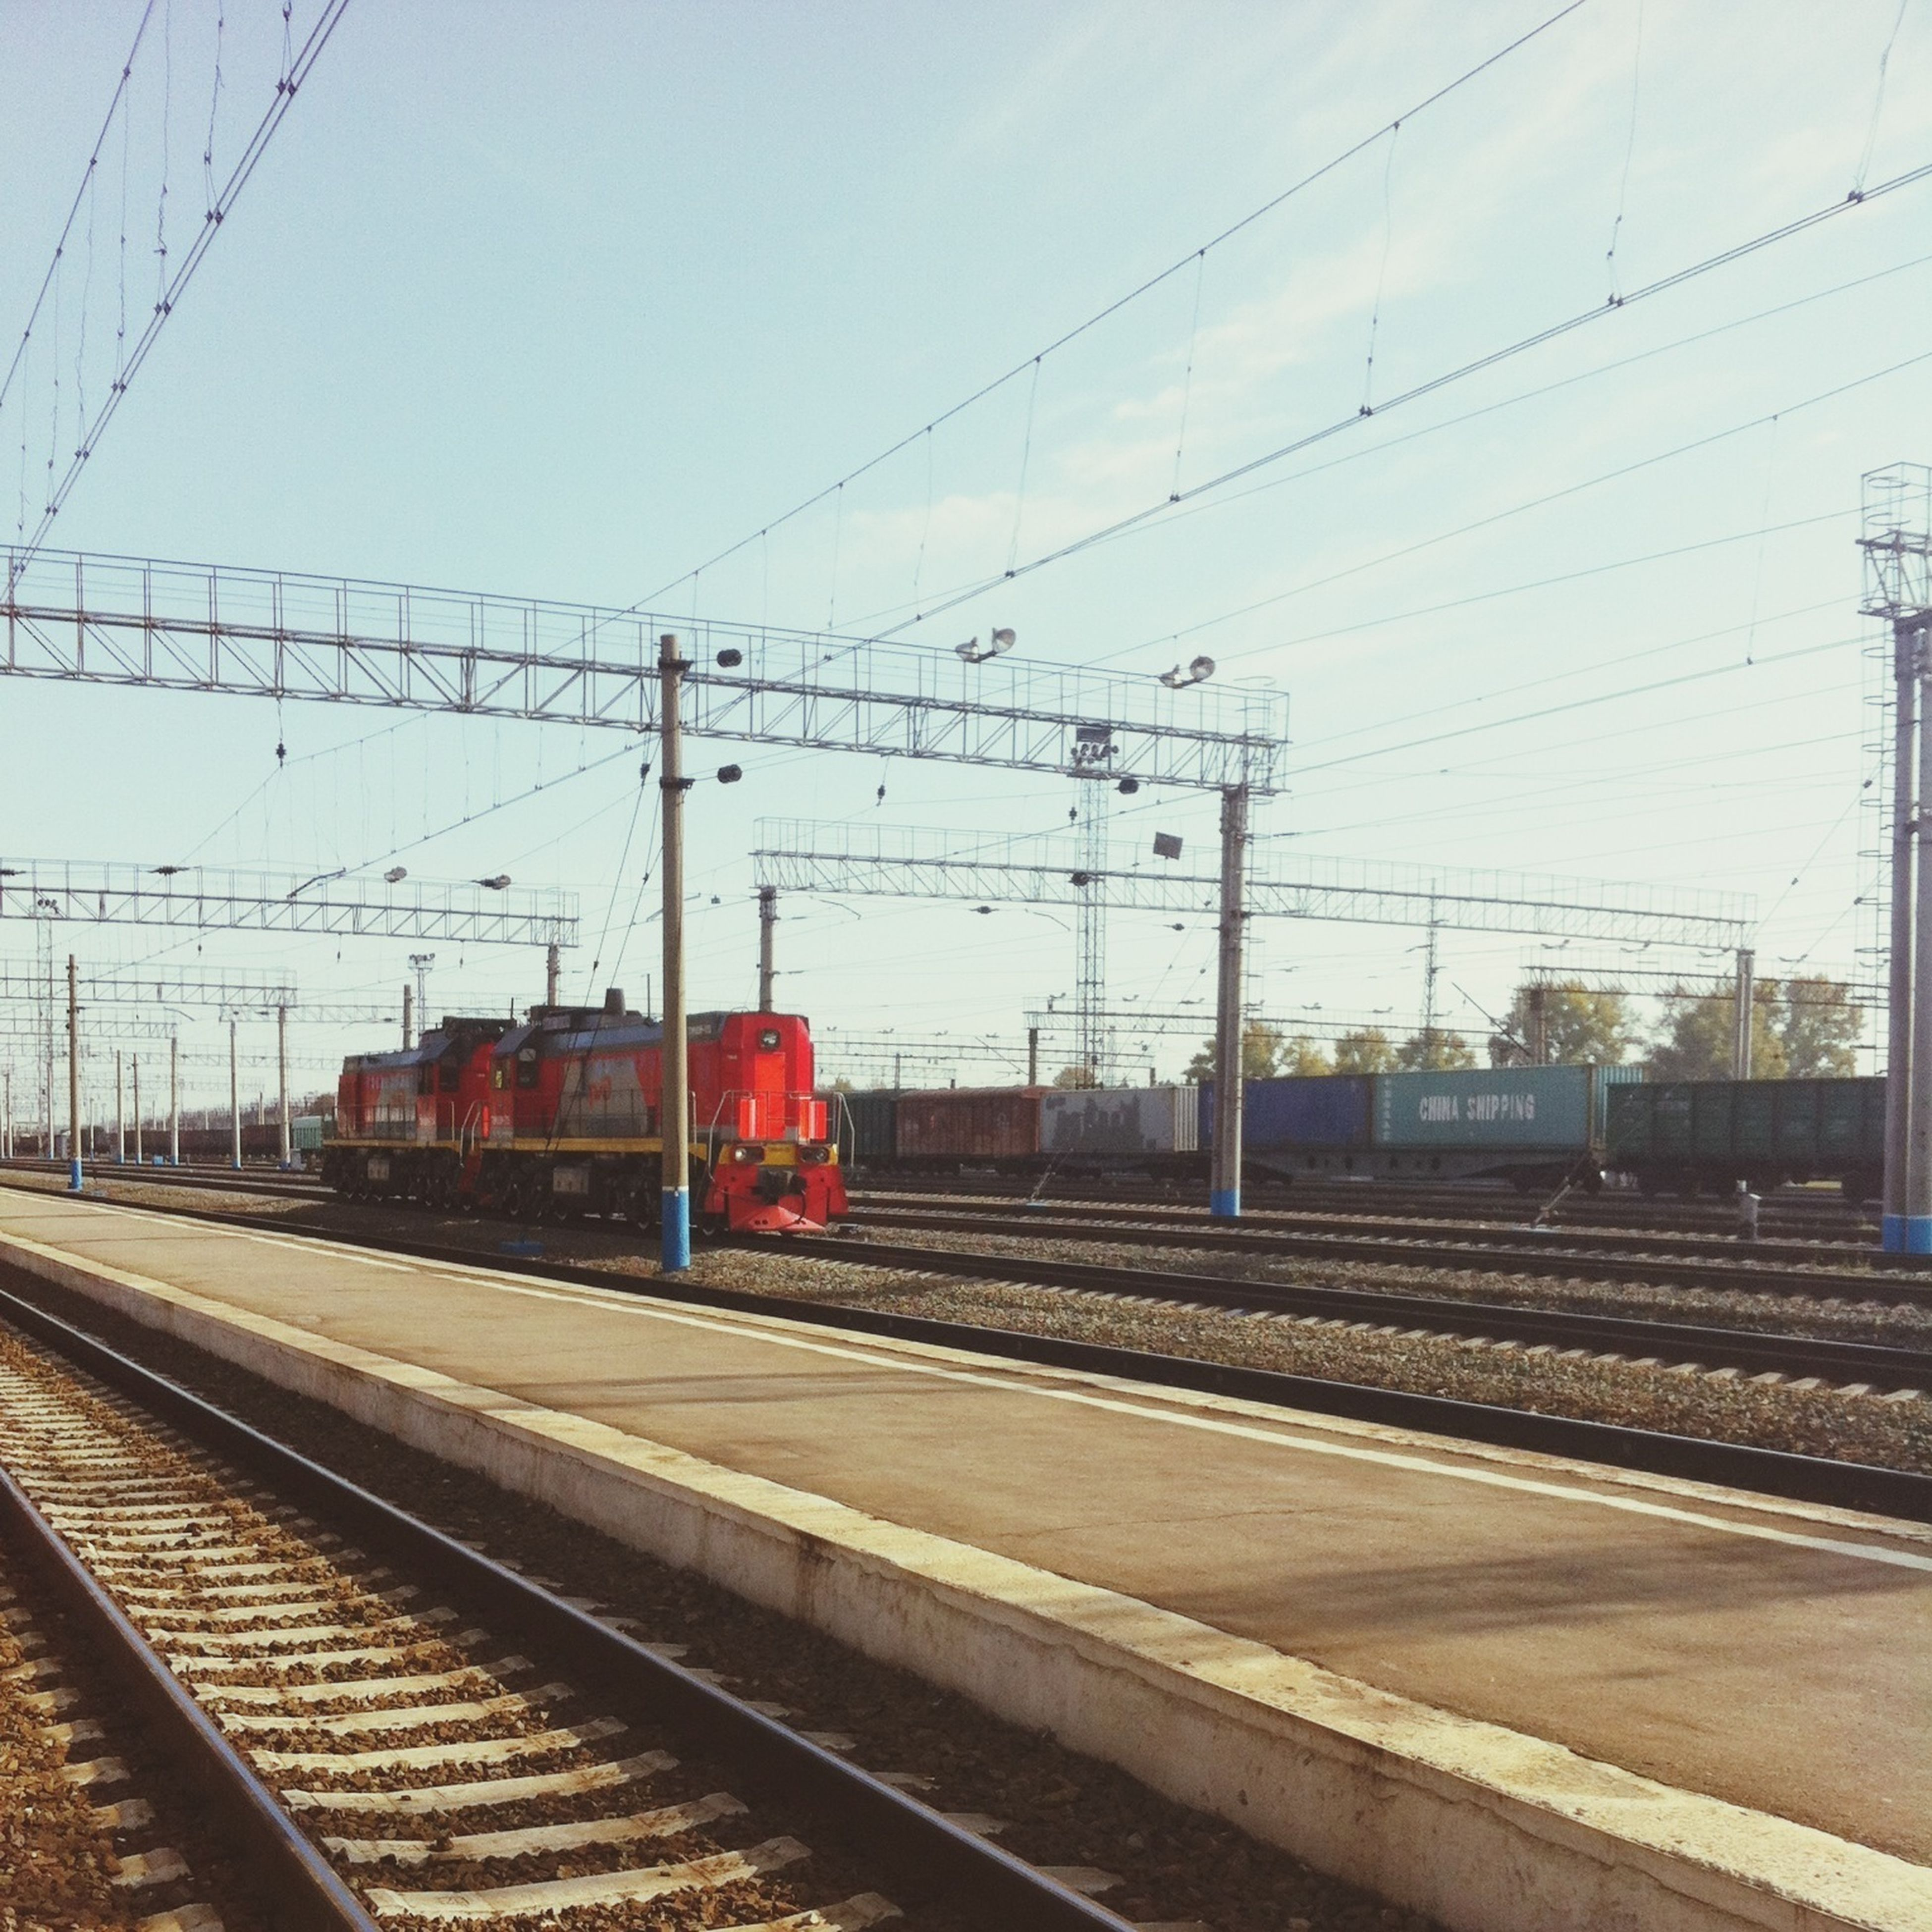 railroad track, rail transportation, transportation, public transportation, power line, railroad station platform, railroad station, electricity pylon, train - vehicle, cable, power supply, railway track, electricity, sky, train, passenger train, travel, connection, power cable, mode of transport